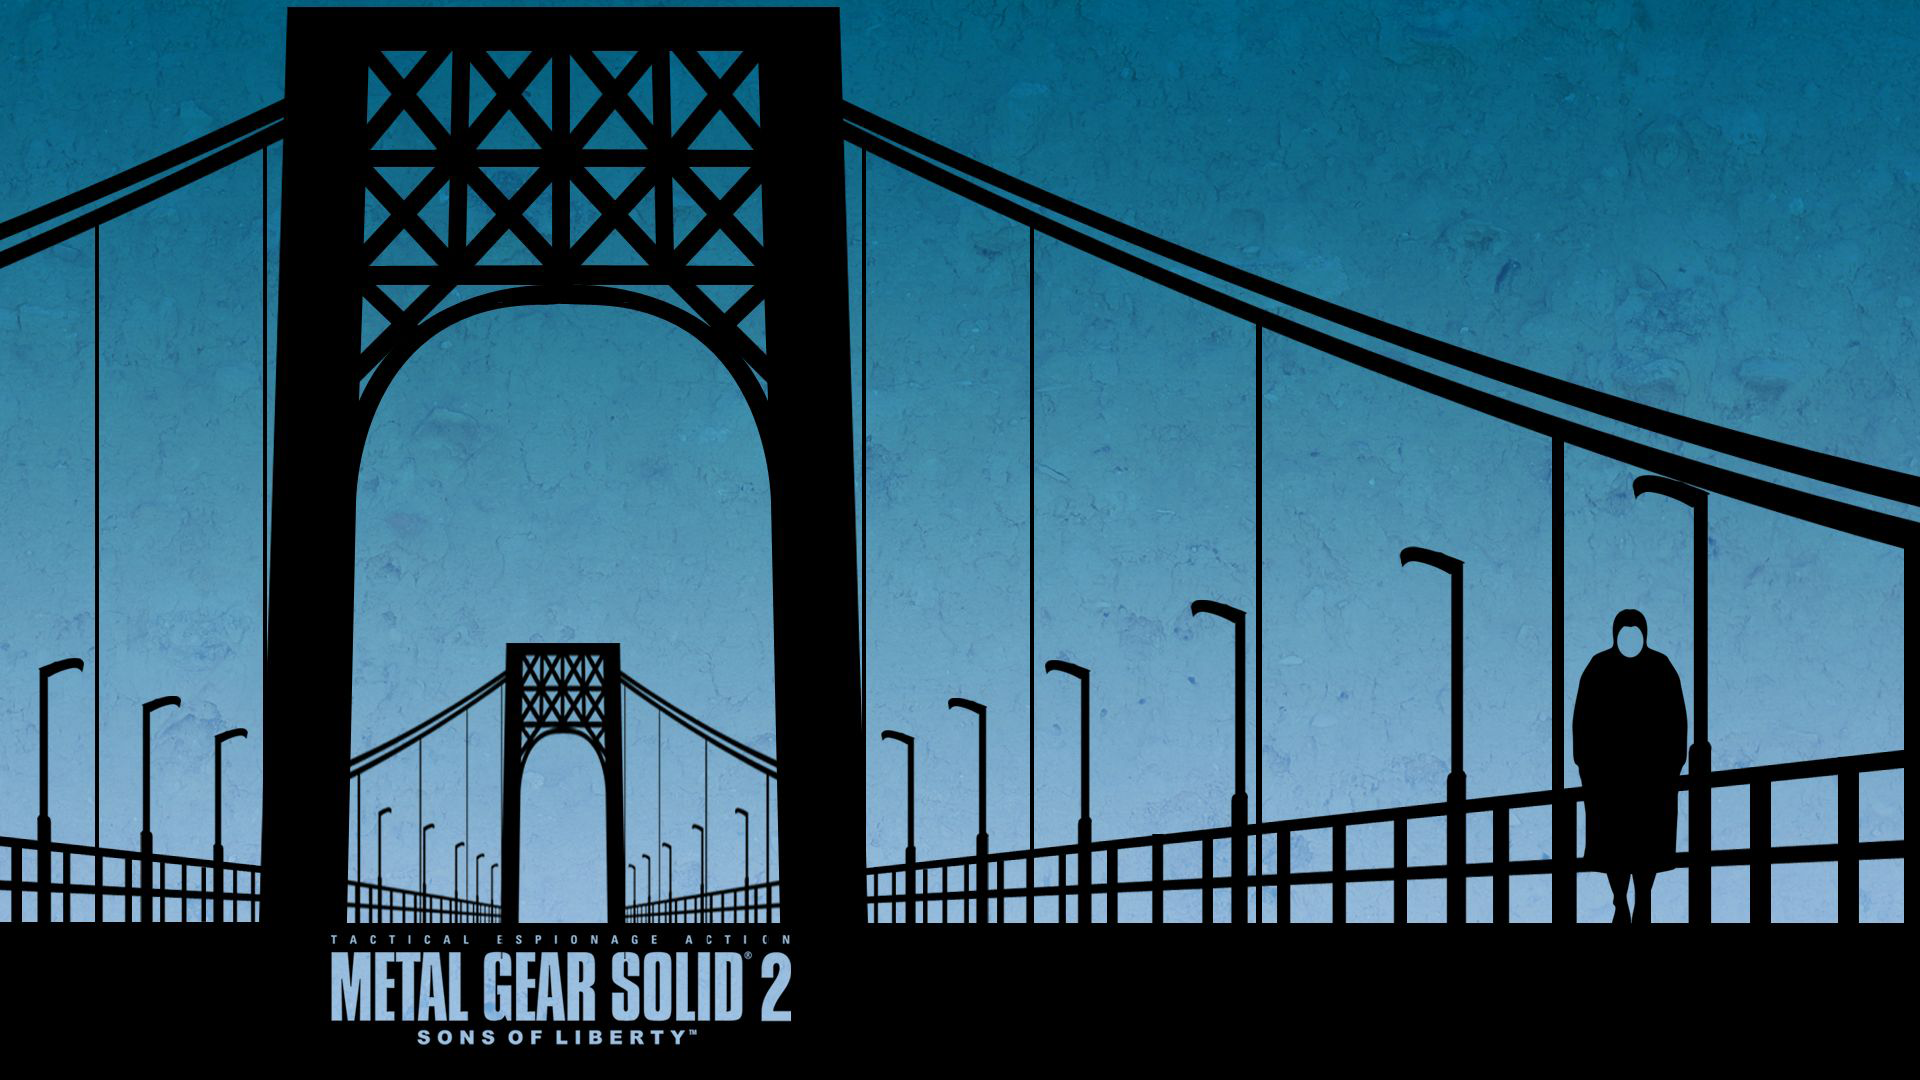 Metal Gear Solid 2: Sons of Liberty HD Wallpapers